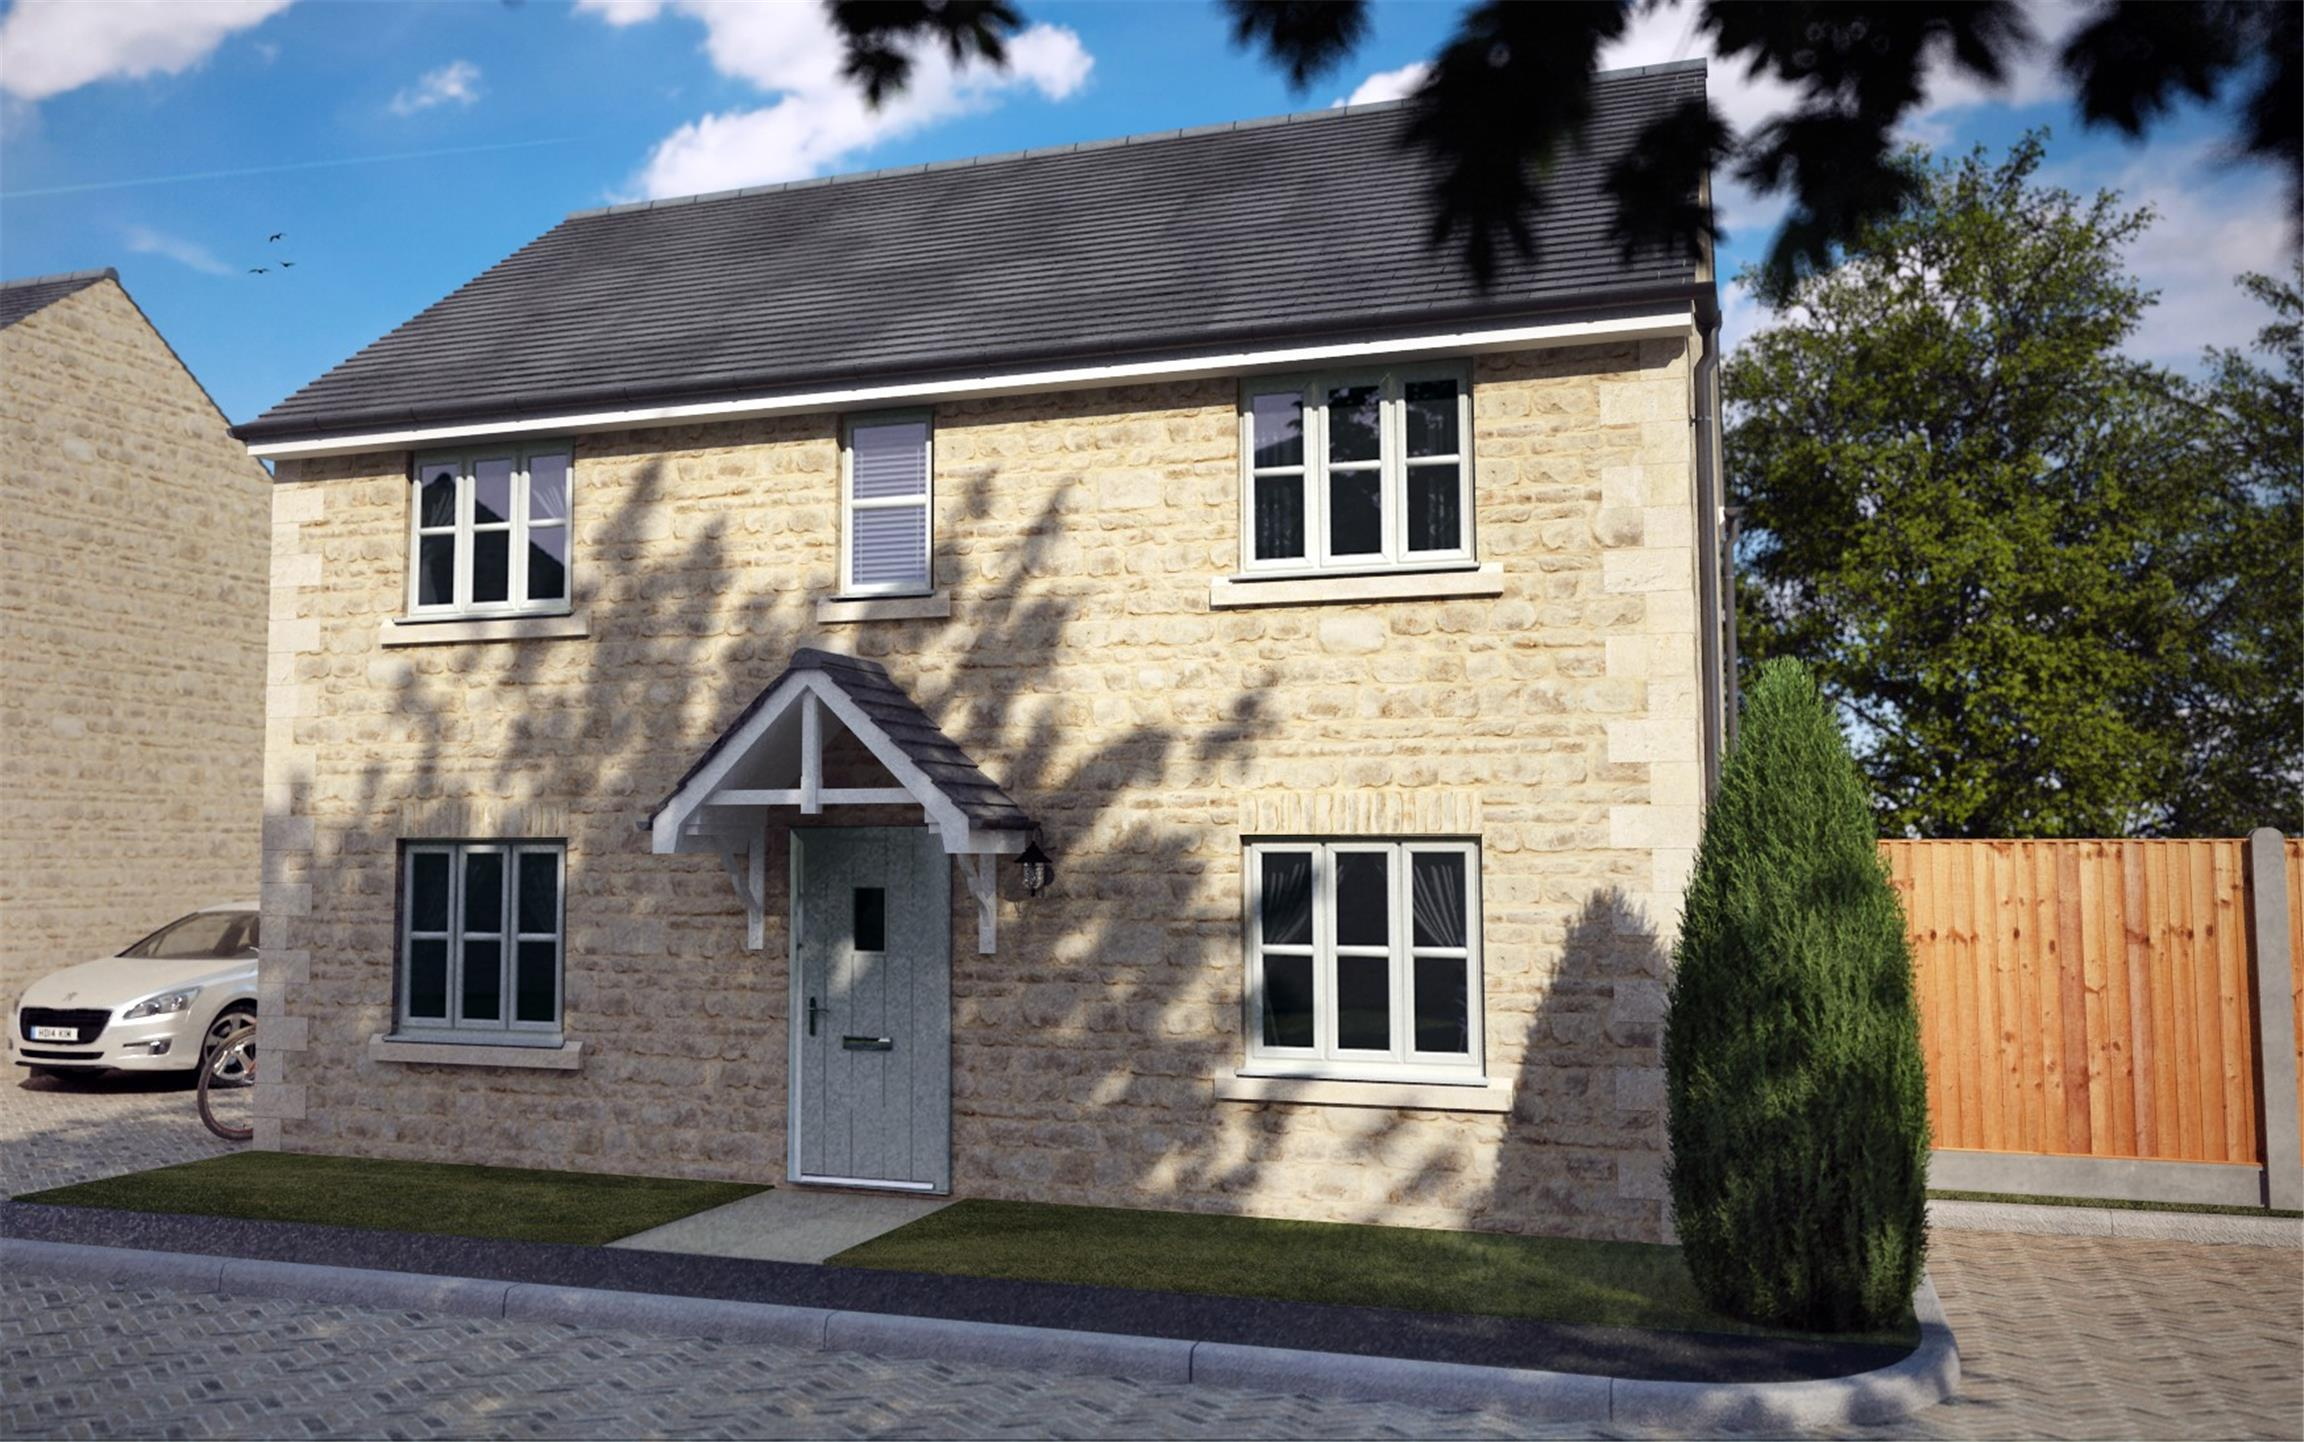 Plot 32, Hares Chase, Swindon SN6